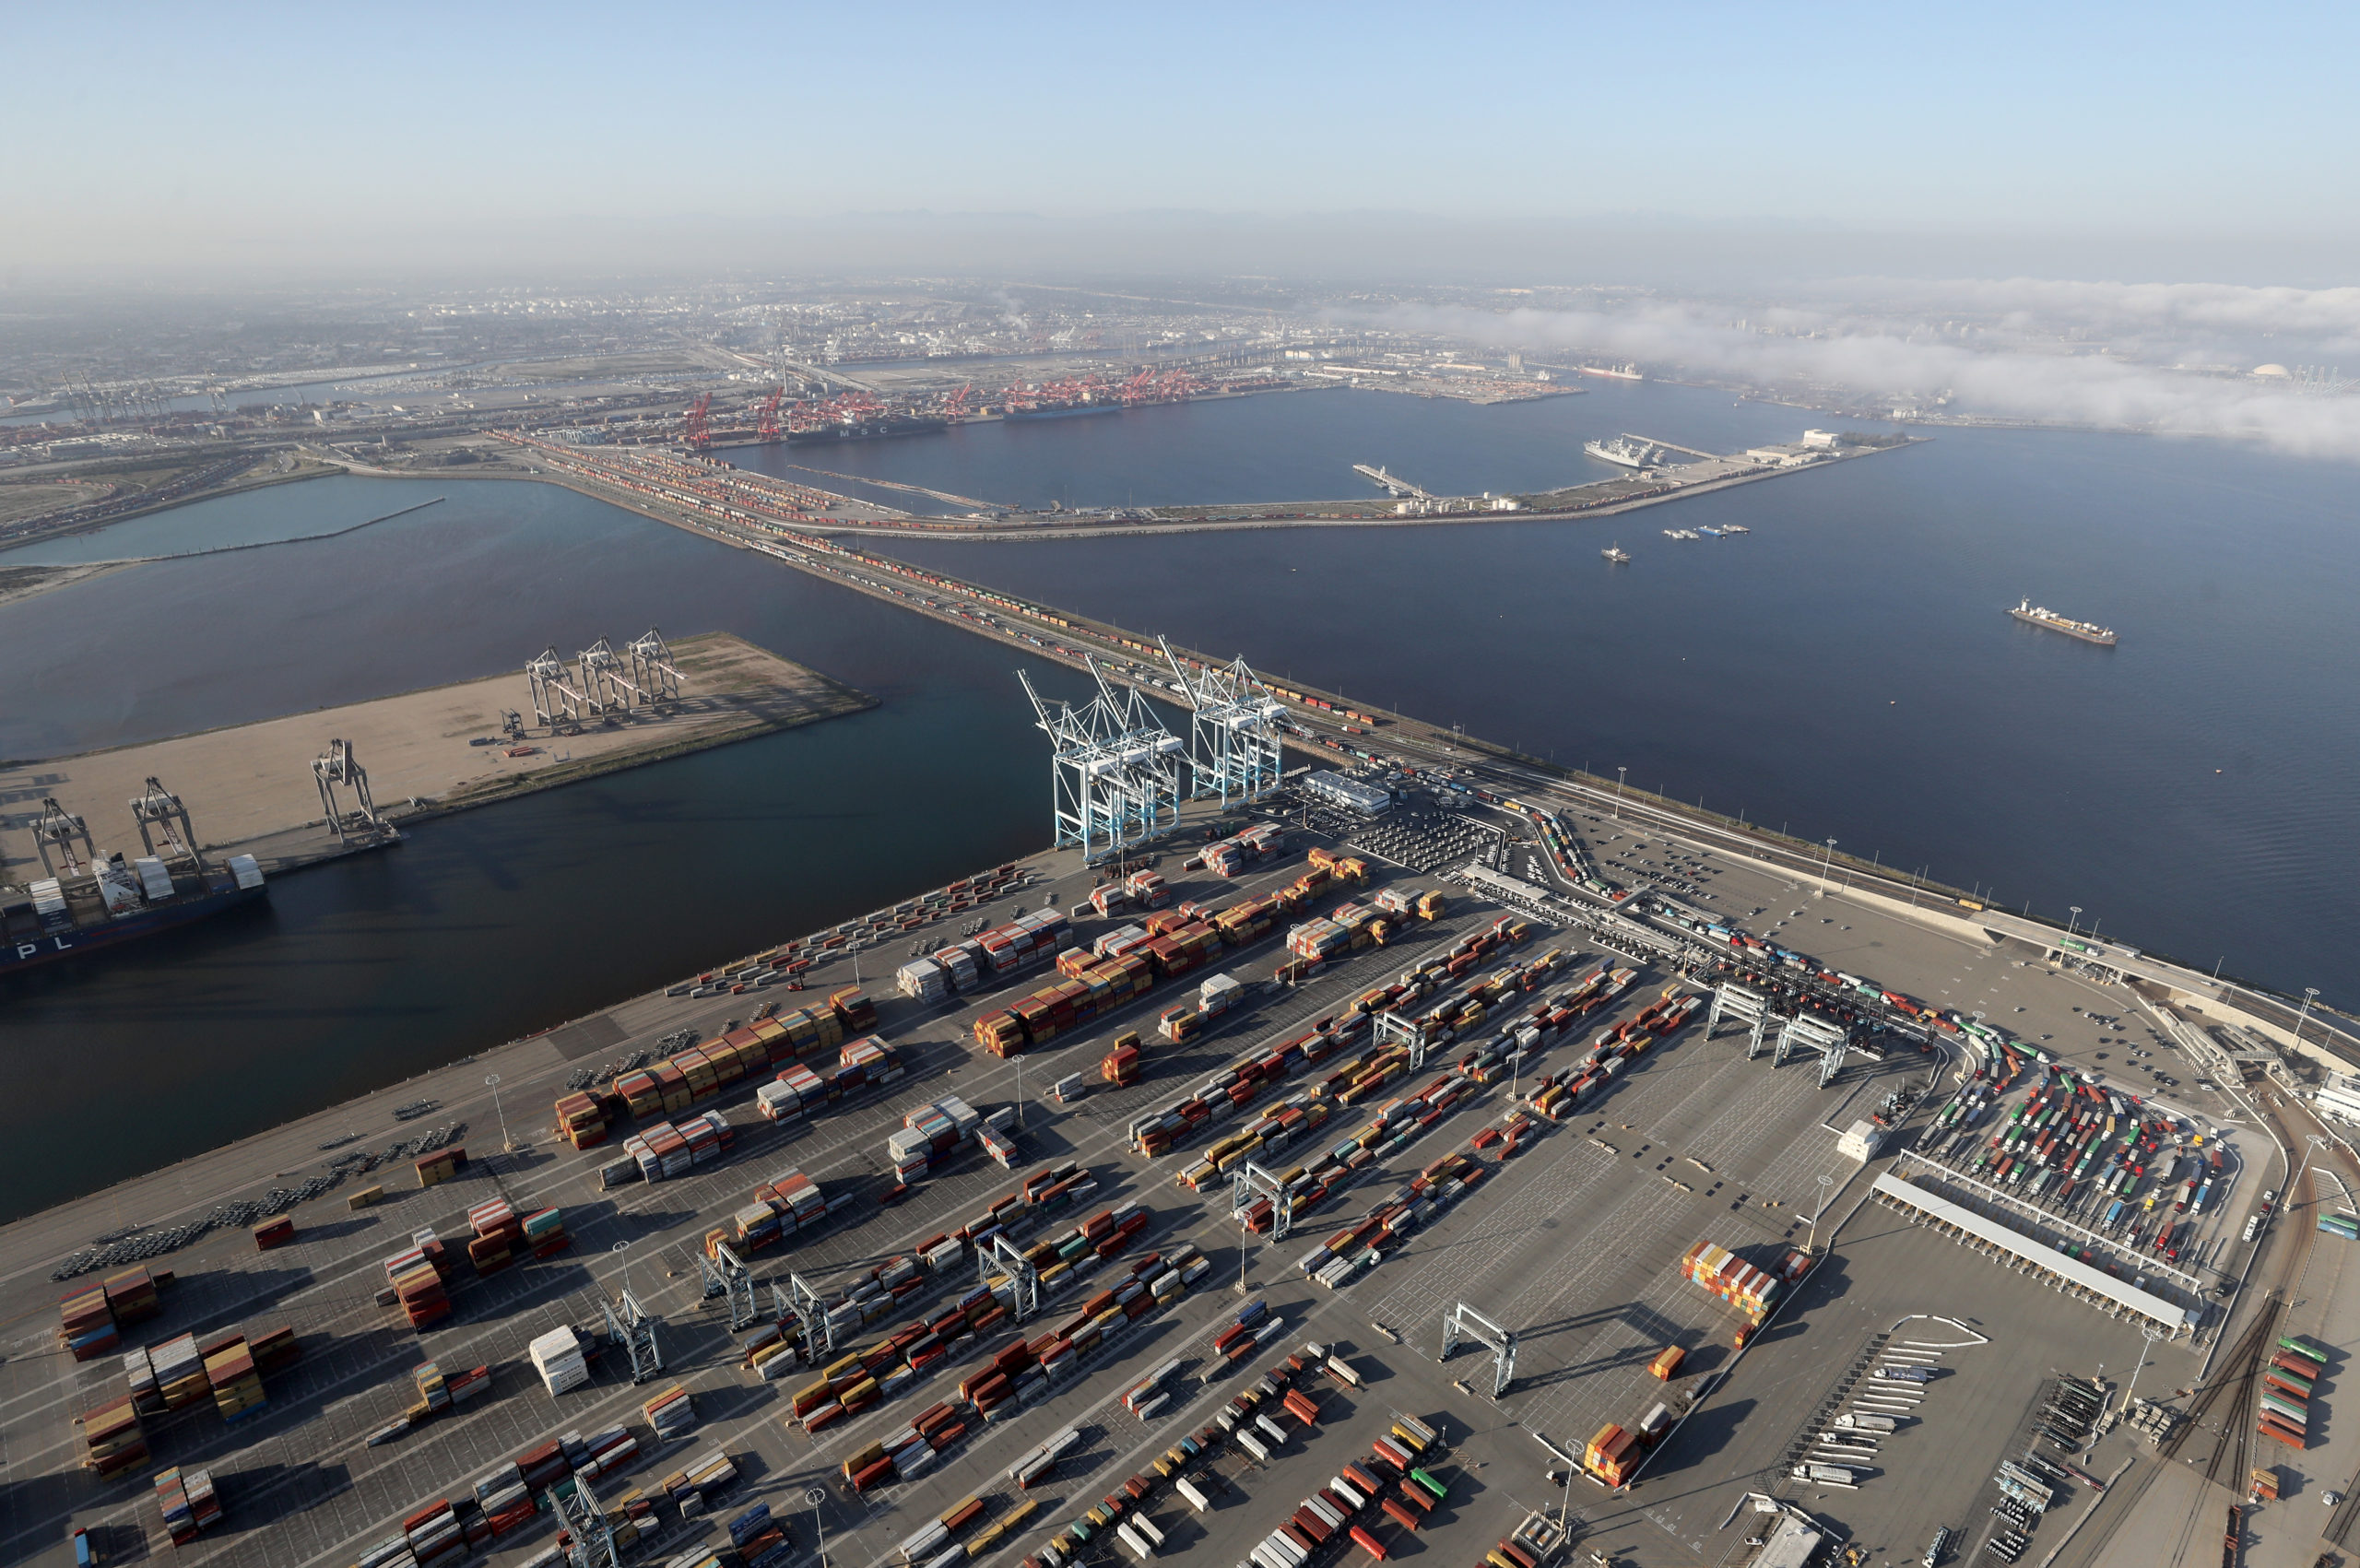 SAN PEDRO, CALIFORNIA - APRIL 28: An aerial view of the Port of Los Angeles and Port of Long Beach amid the coronavirus pandemic on April 28, 2020 in San Pedro, California. Around three dozen oil tankers are currently anchored off the California coast, with around twenty anchored off the ports of Los Angeles and Long Beach, as the spread of COVID-19 impacts global demand for crude oil. (Photo by Mario Tama/Getty Images)